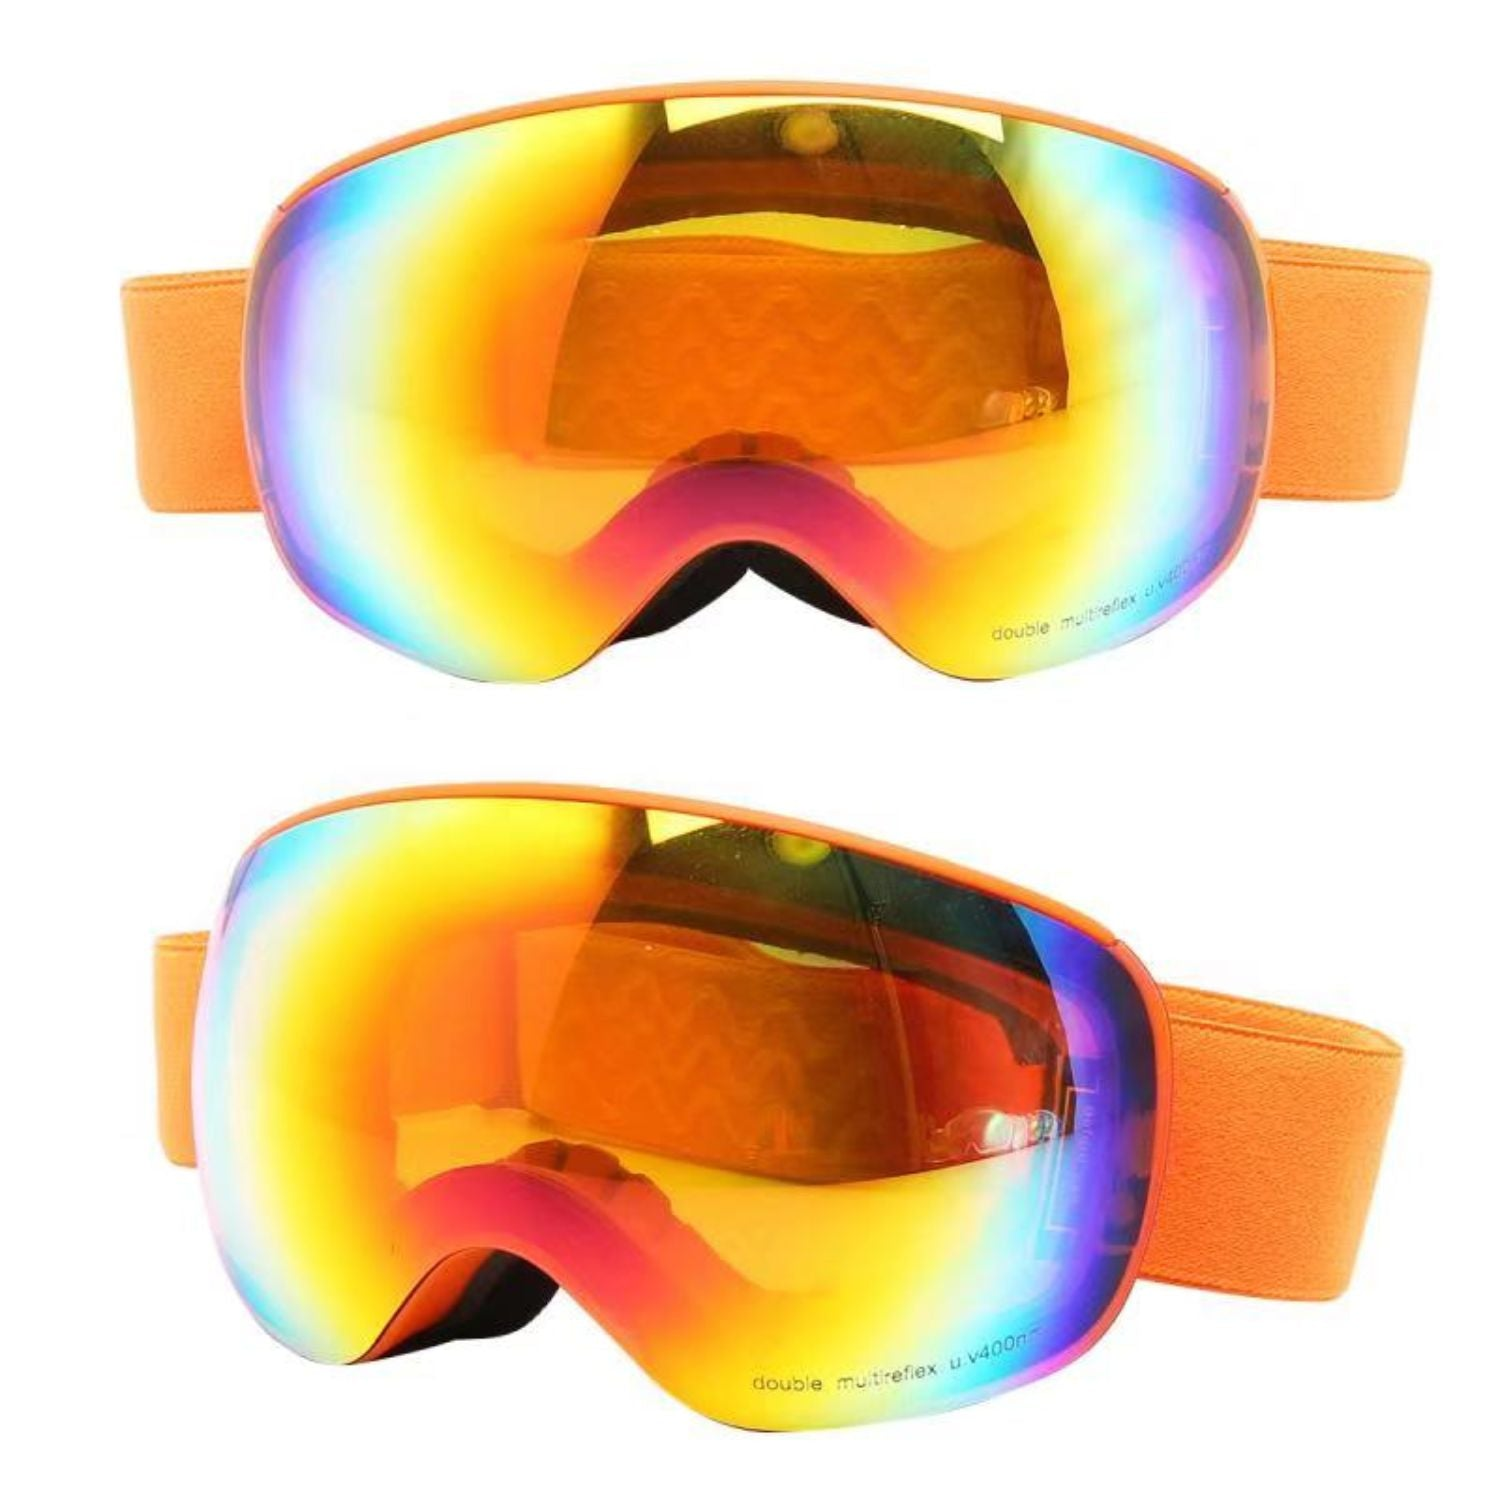 SG06 - Outdoor Ski Snowboard UV Protection Goggles